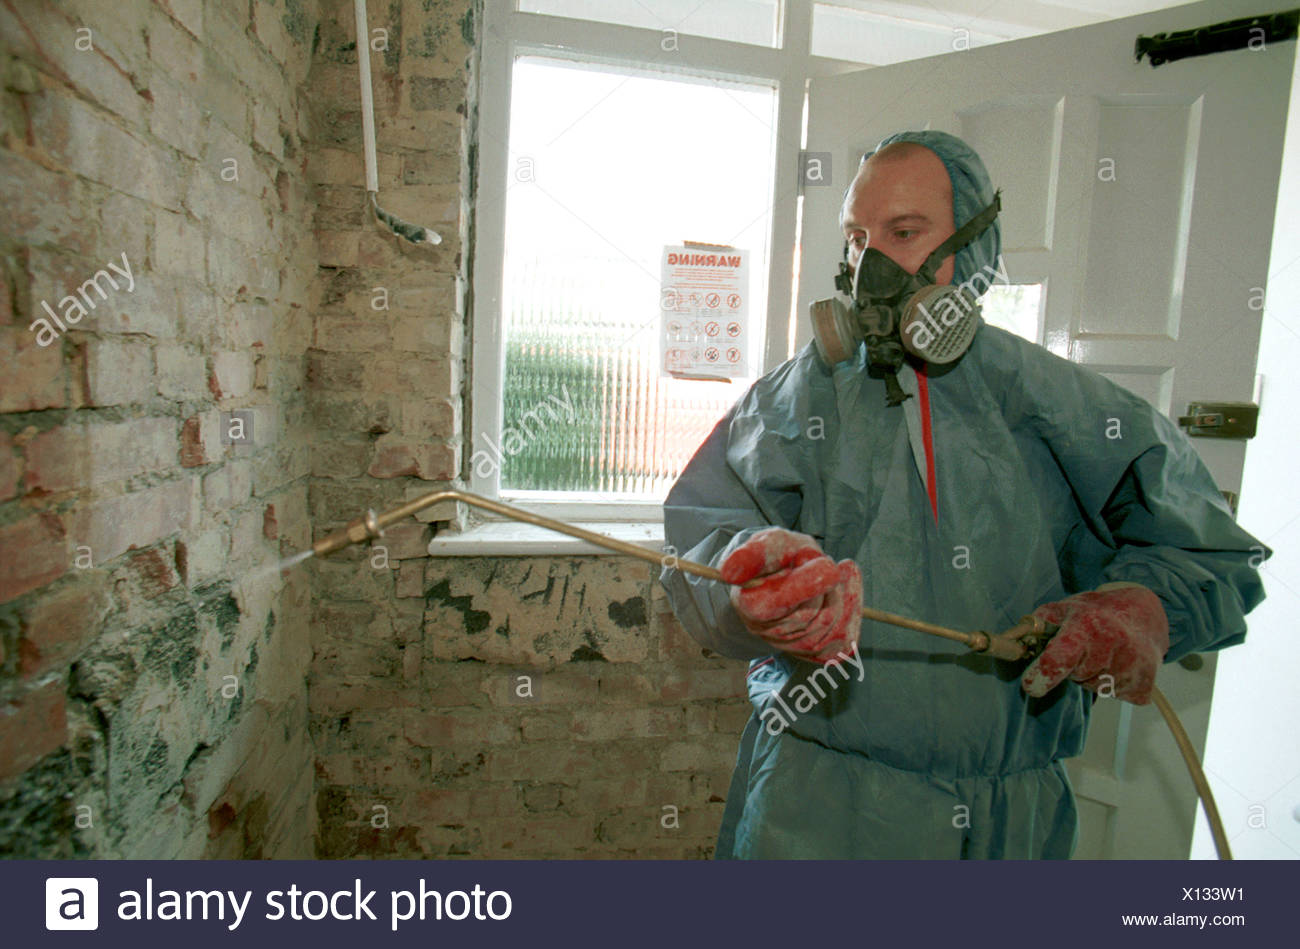 Damp Proofing. Applying chemical treatments with a spray gun. - Stock Image